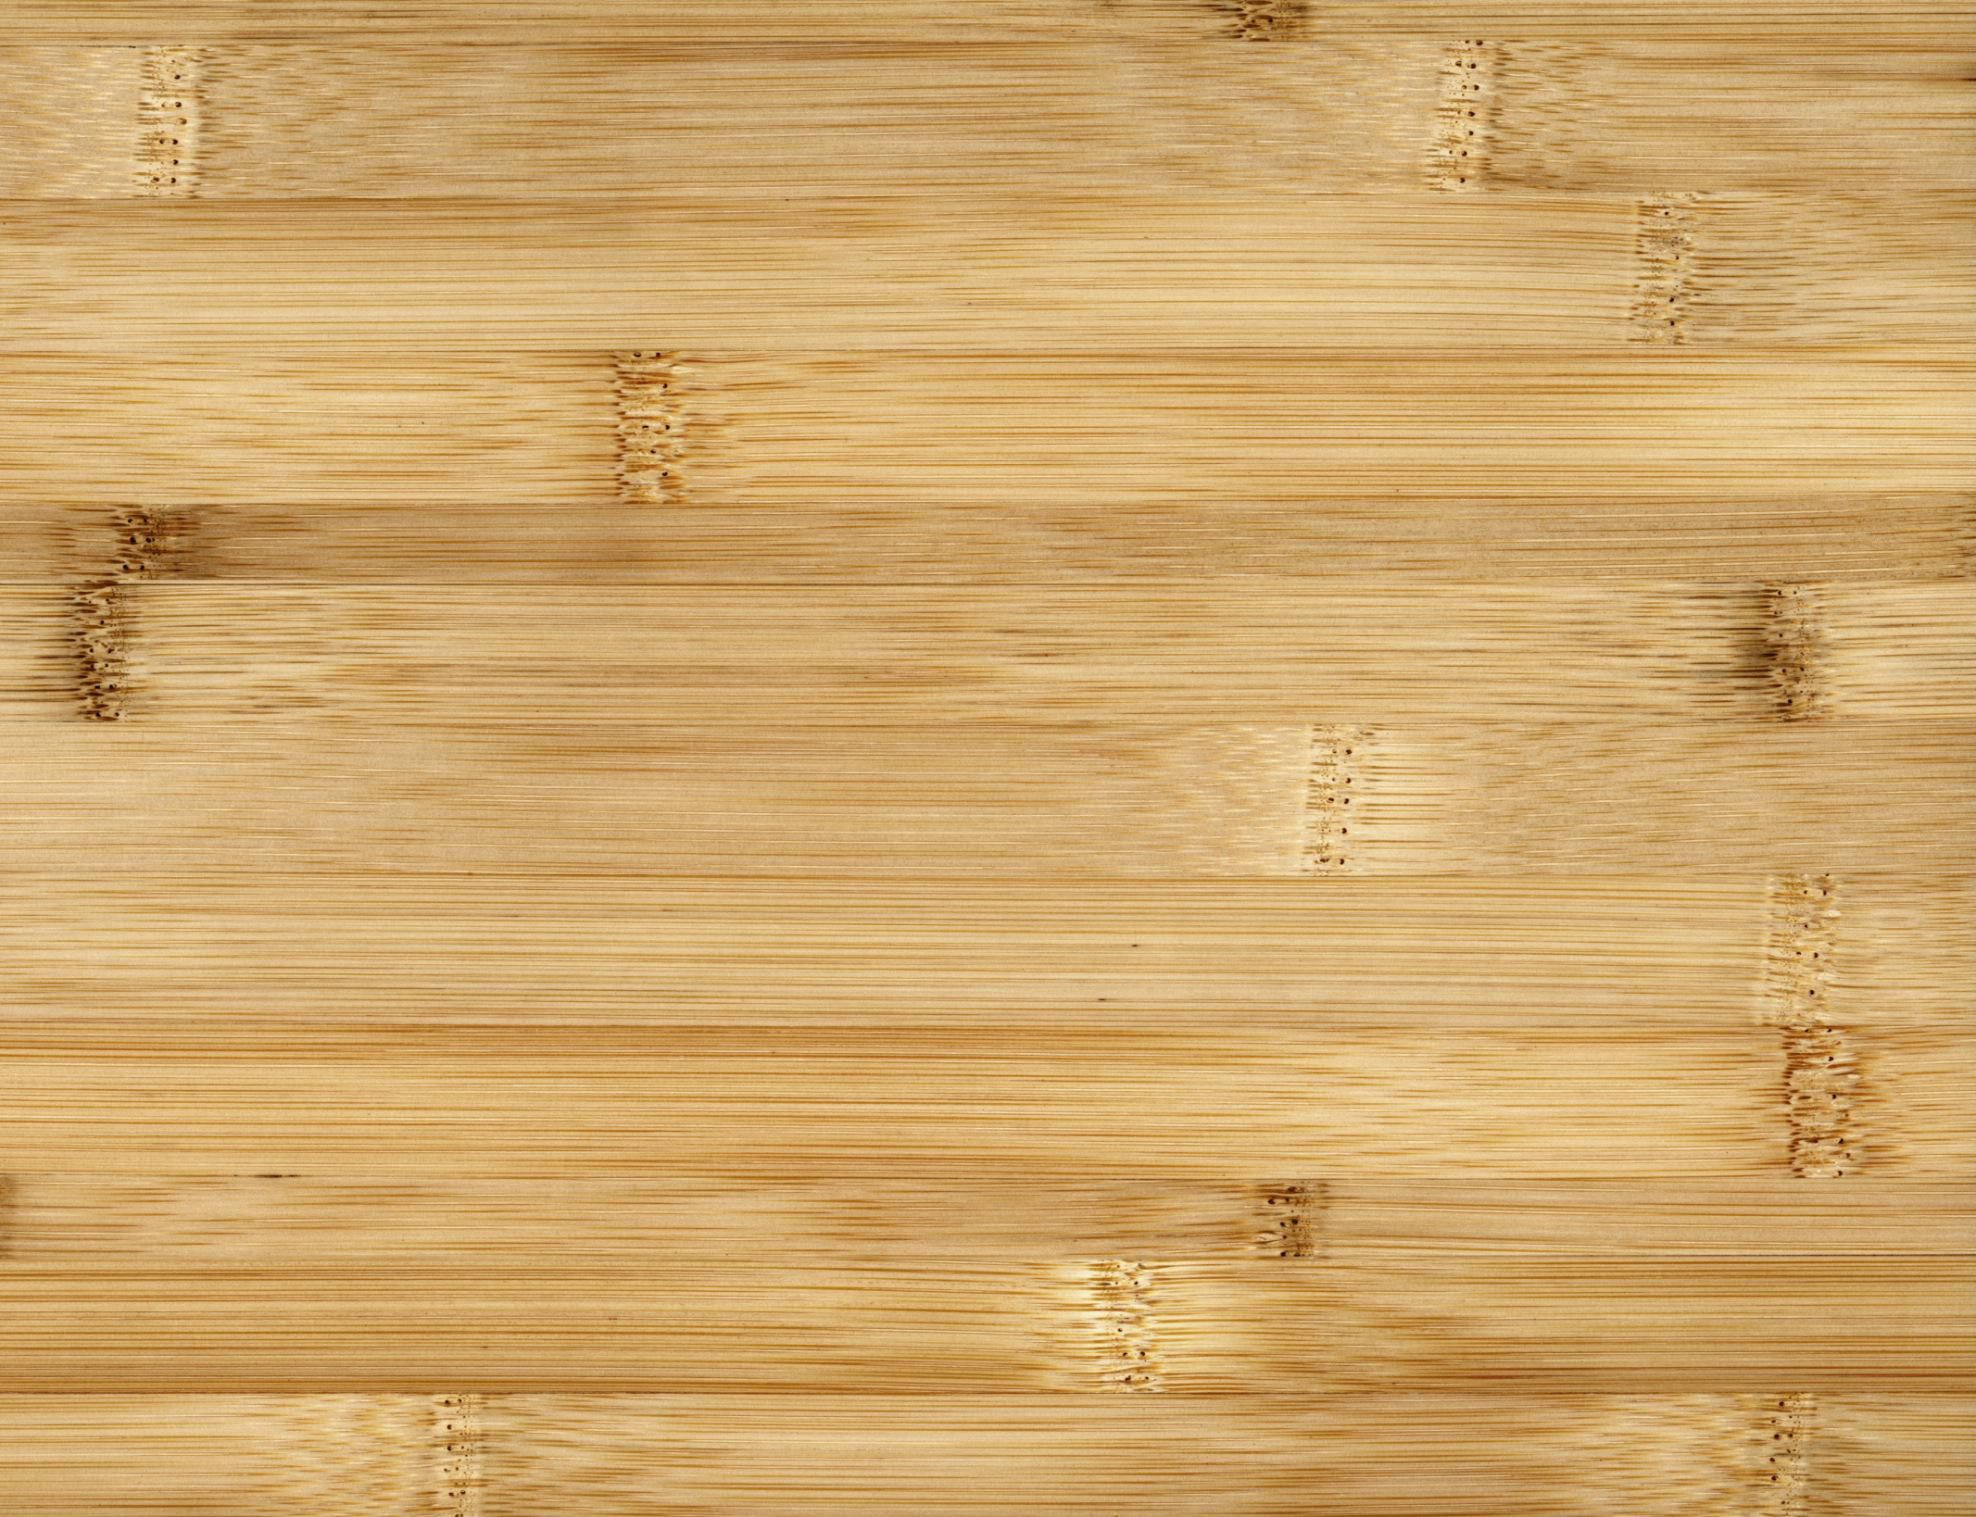 5 Best Bamboo Floors